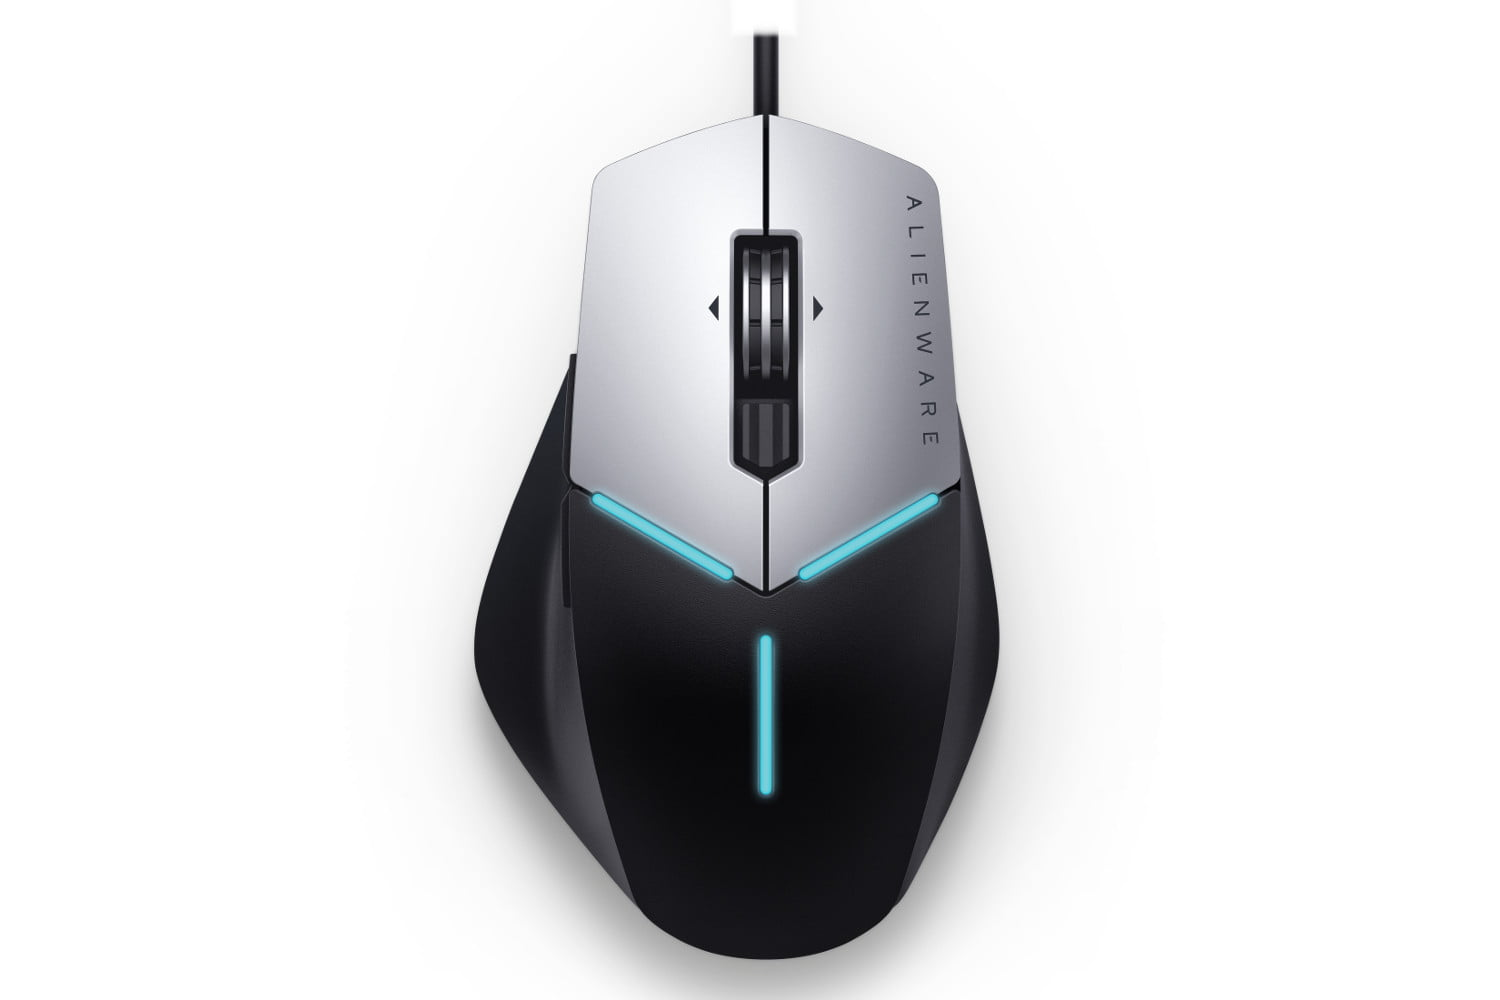 alienware mice keyboard displays revealed advanced gaming mouse  2